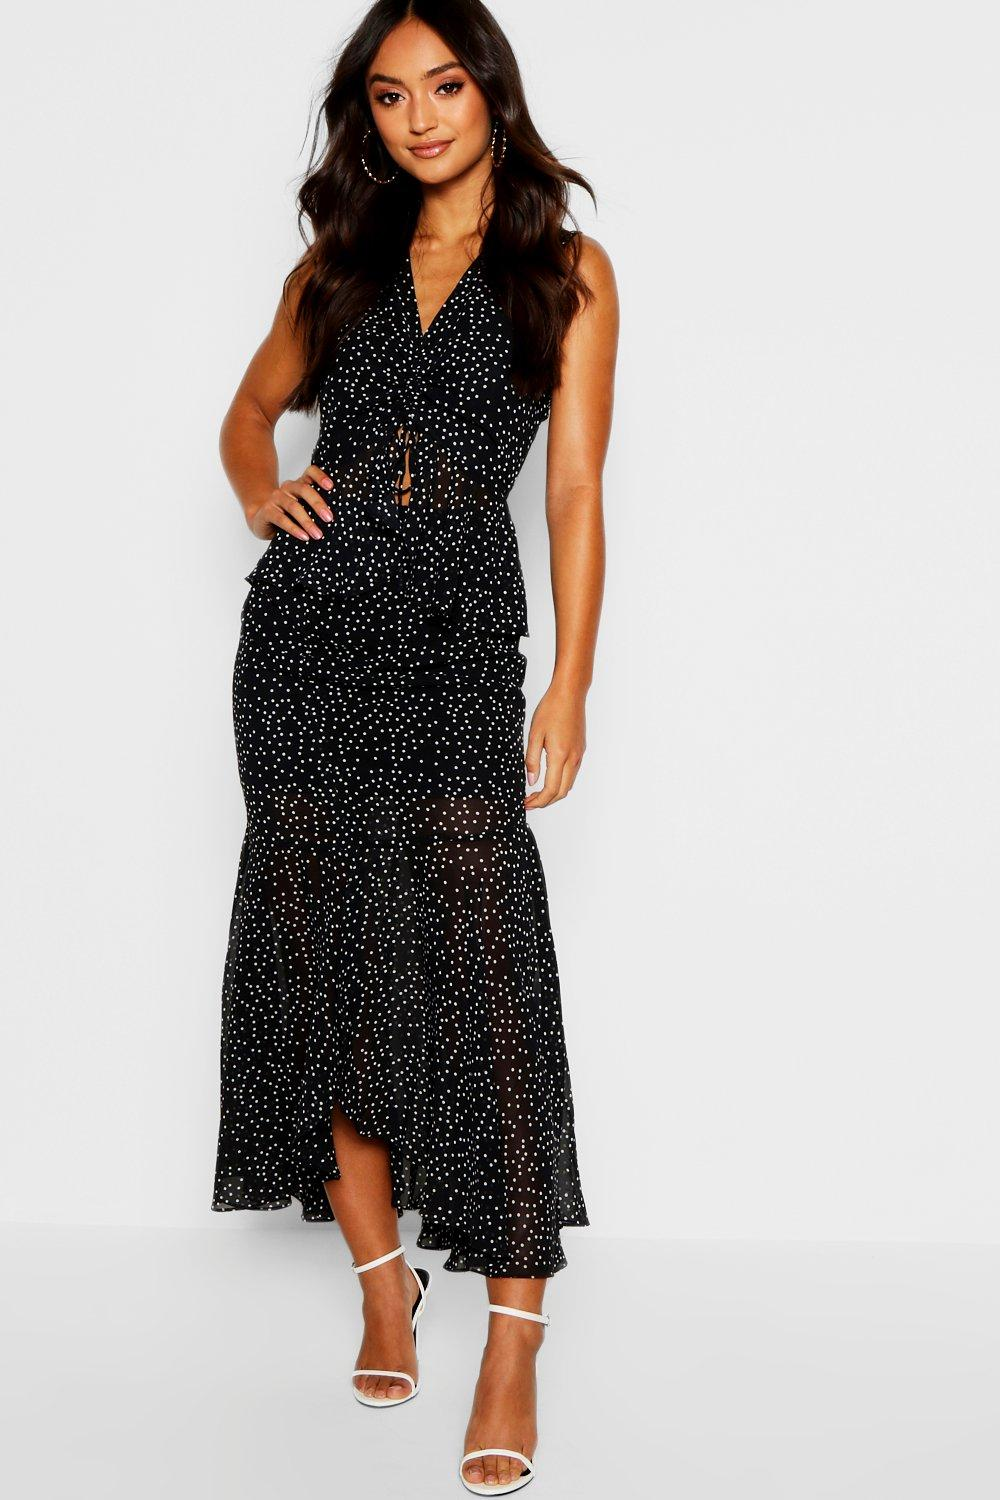 325a875e2bc7 Womens Black Petite Ruffle & Ruched Midi Dress. Hover to zoom